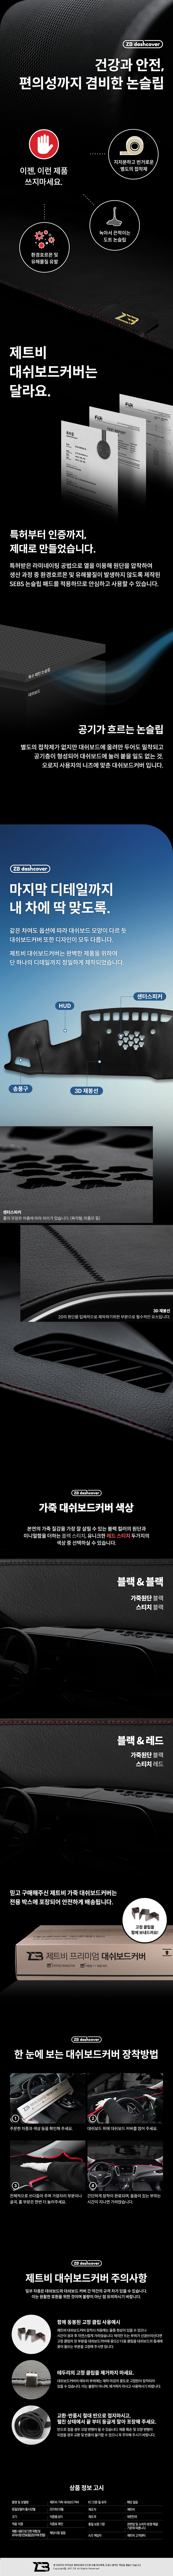 zb_dashcover_leather_02.jpg